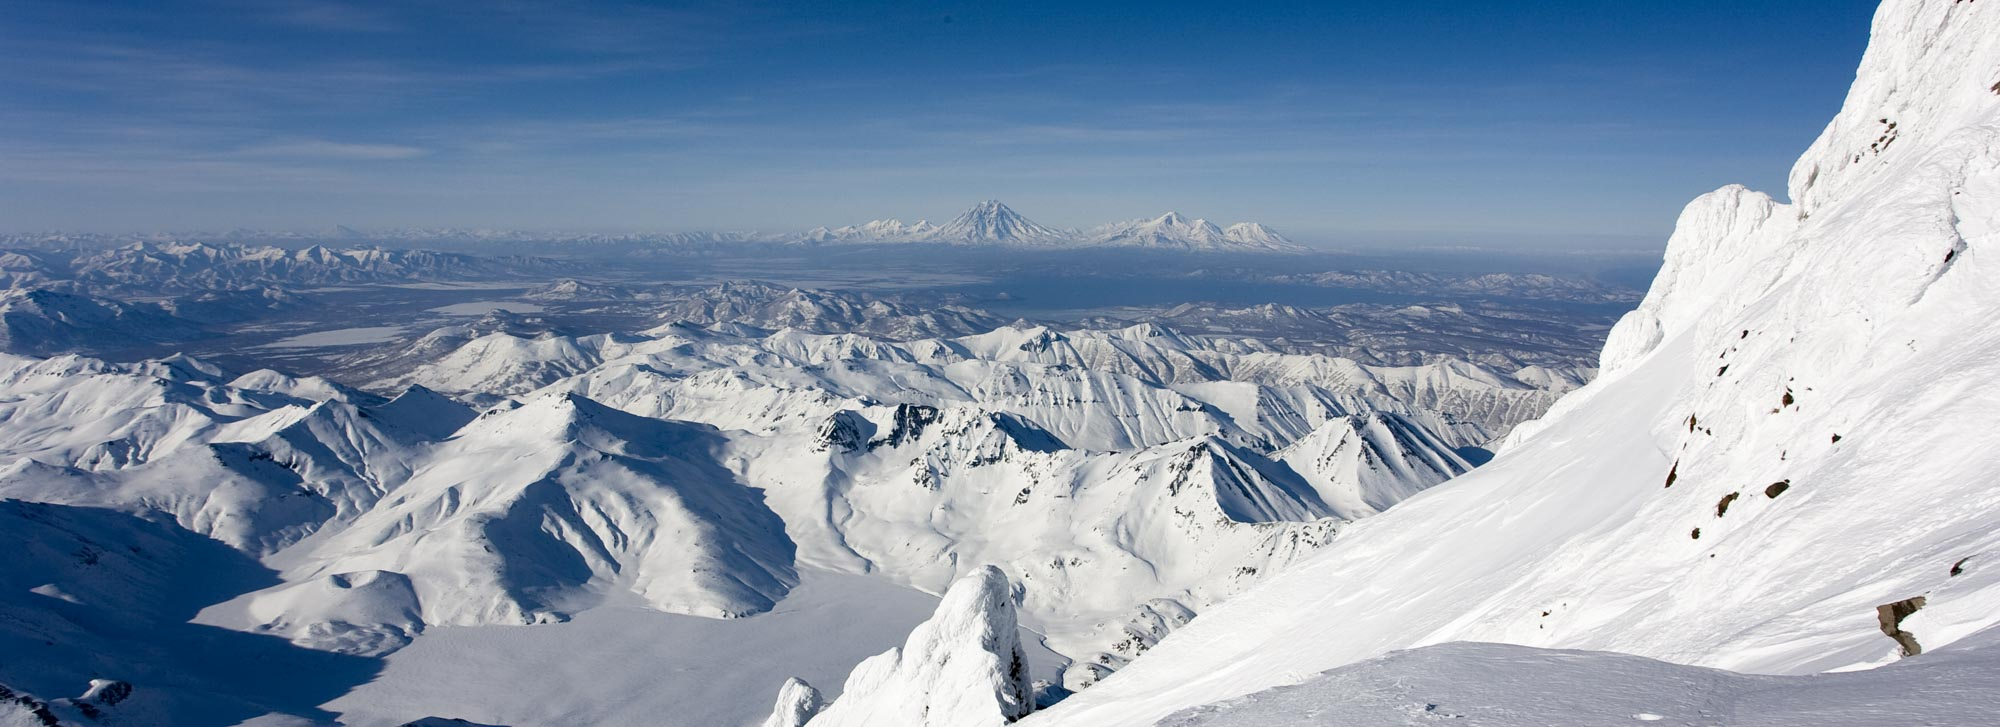 slider_kamchatka_scenery_005